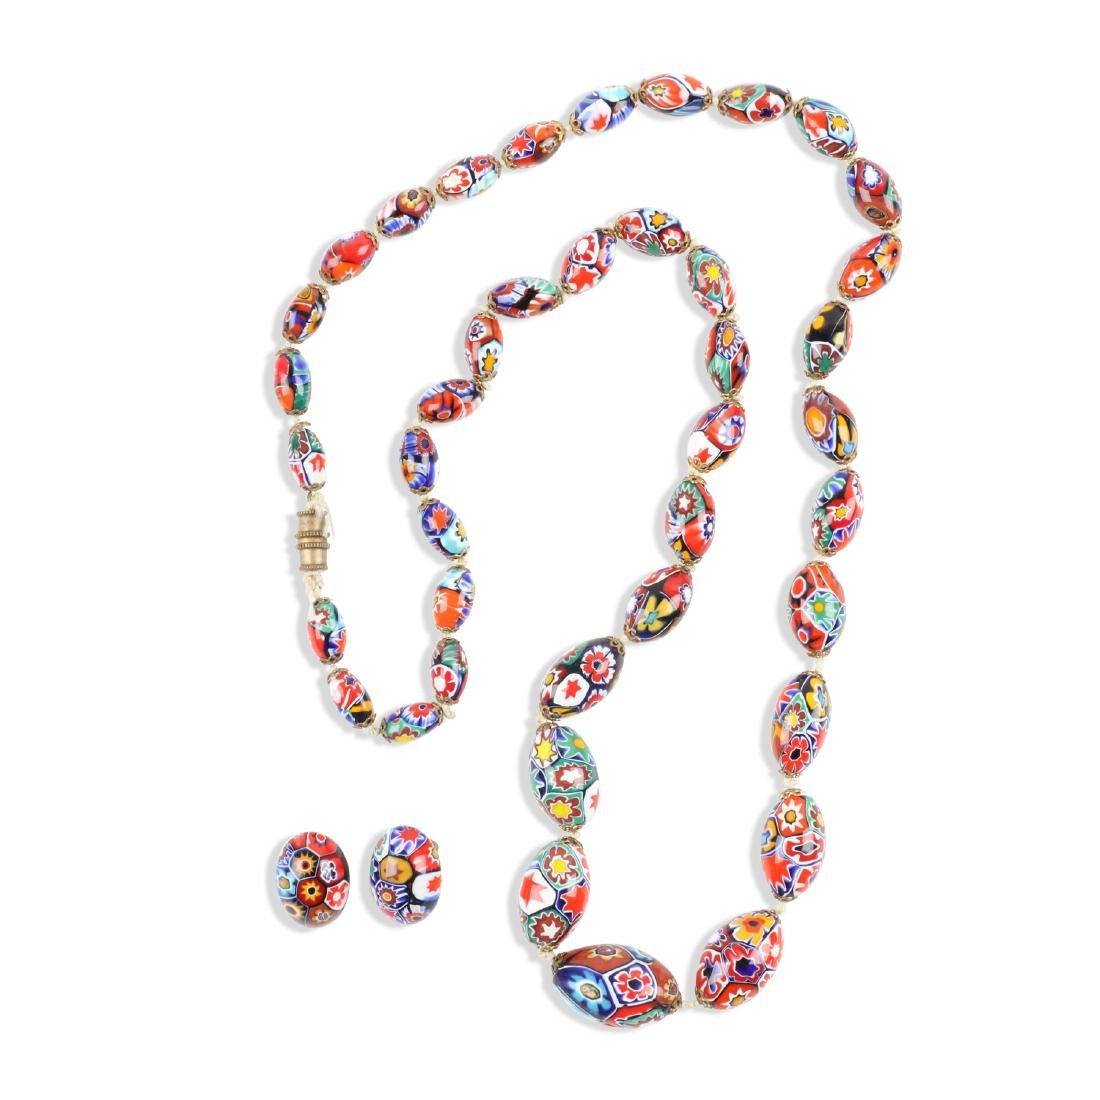 A Murano Millefiori Beaded Necklace